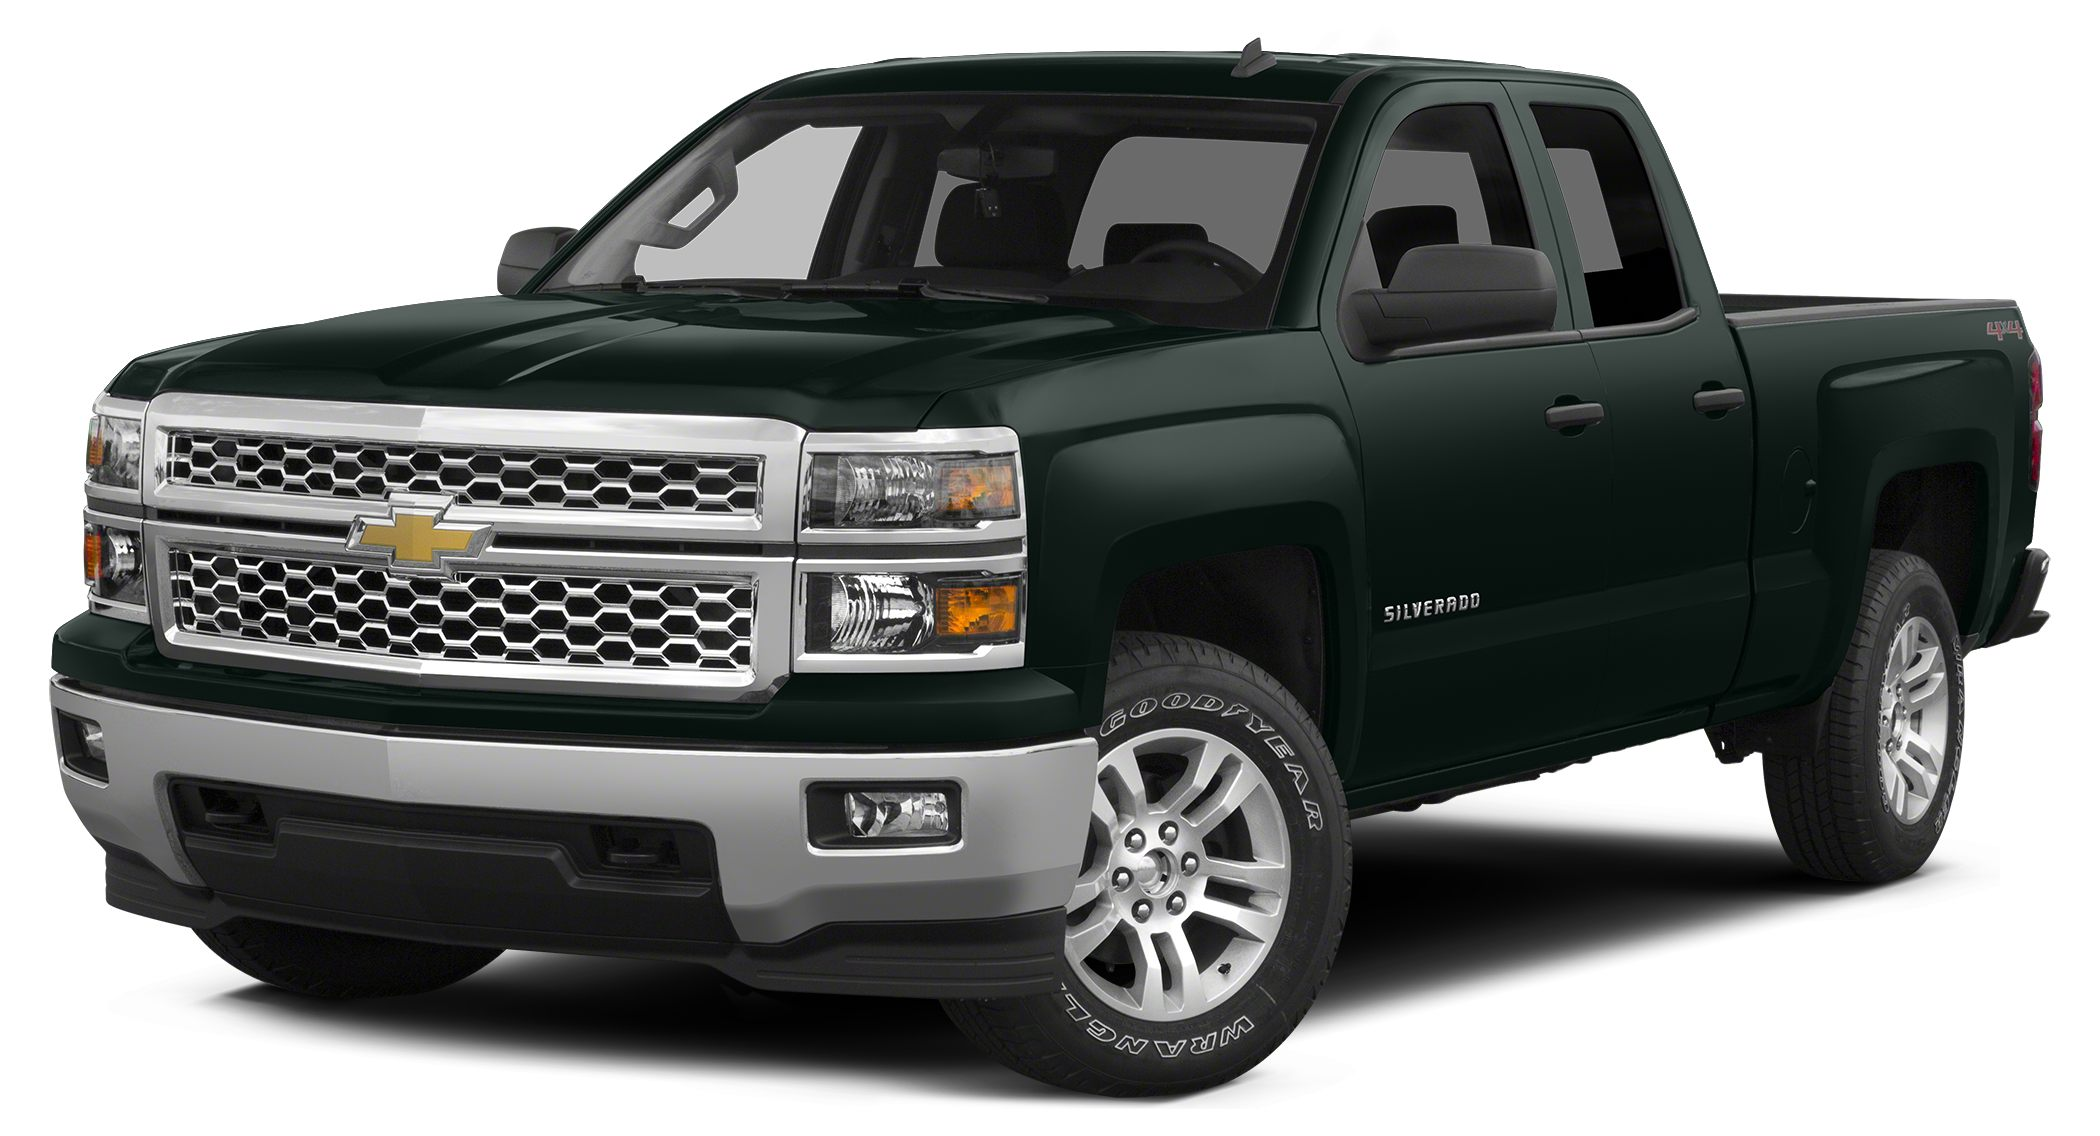 2015 Chevrolet Silverado 1500 1LT Miles 9Color Rainforest Green Metallic Stock 000C5294 VIN